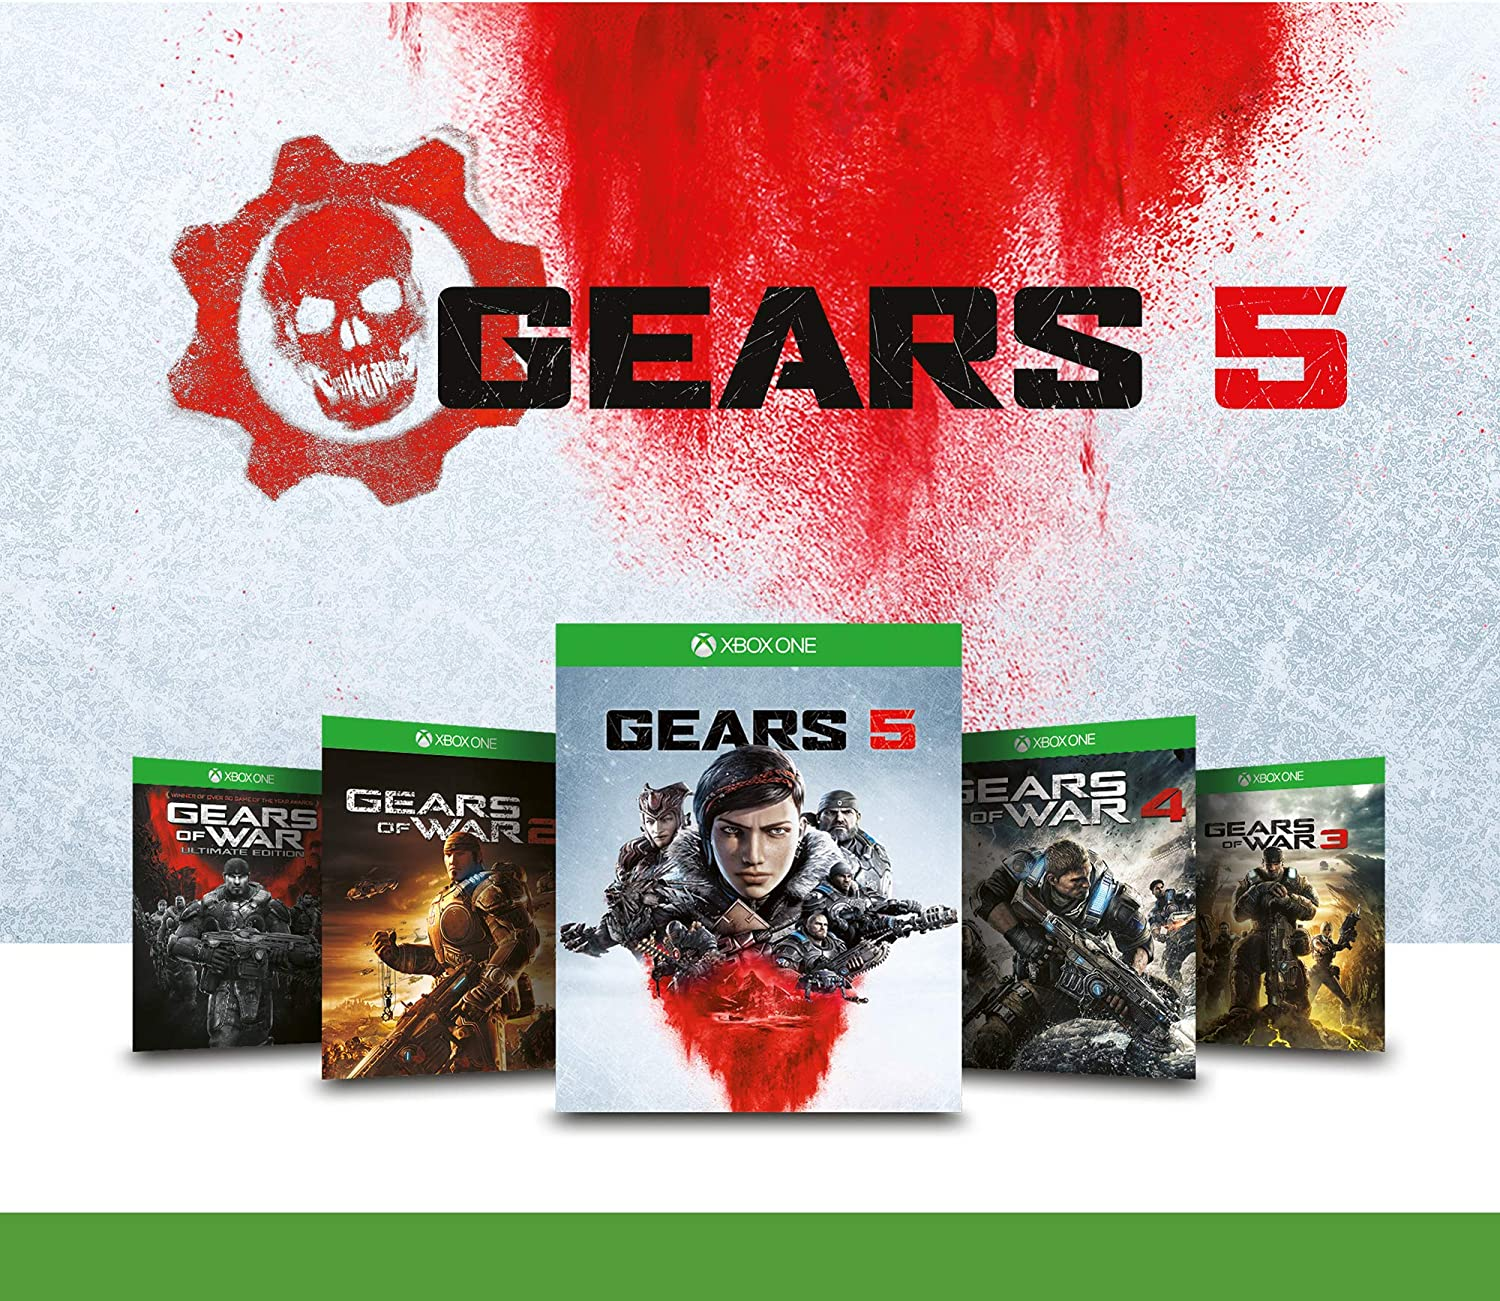 Xbox One X - Bundle Gears of War 5 Ultimate Edition - Inclusi Gears of War 2, 3, 4 + 1 Mese Live Gold + 1 Mese Gamepass - Limited Edition [Importación italiana]: Amazon.es: Videojuegos